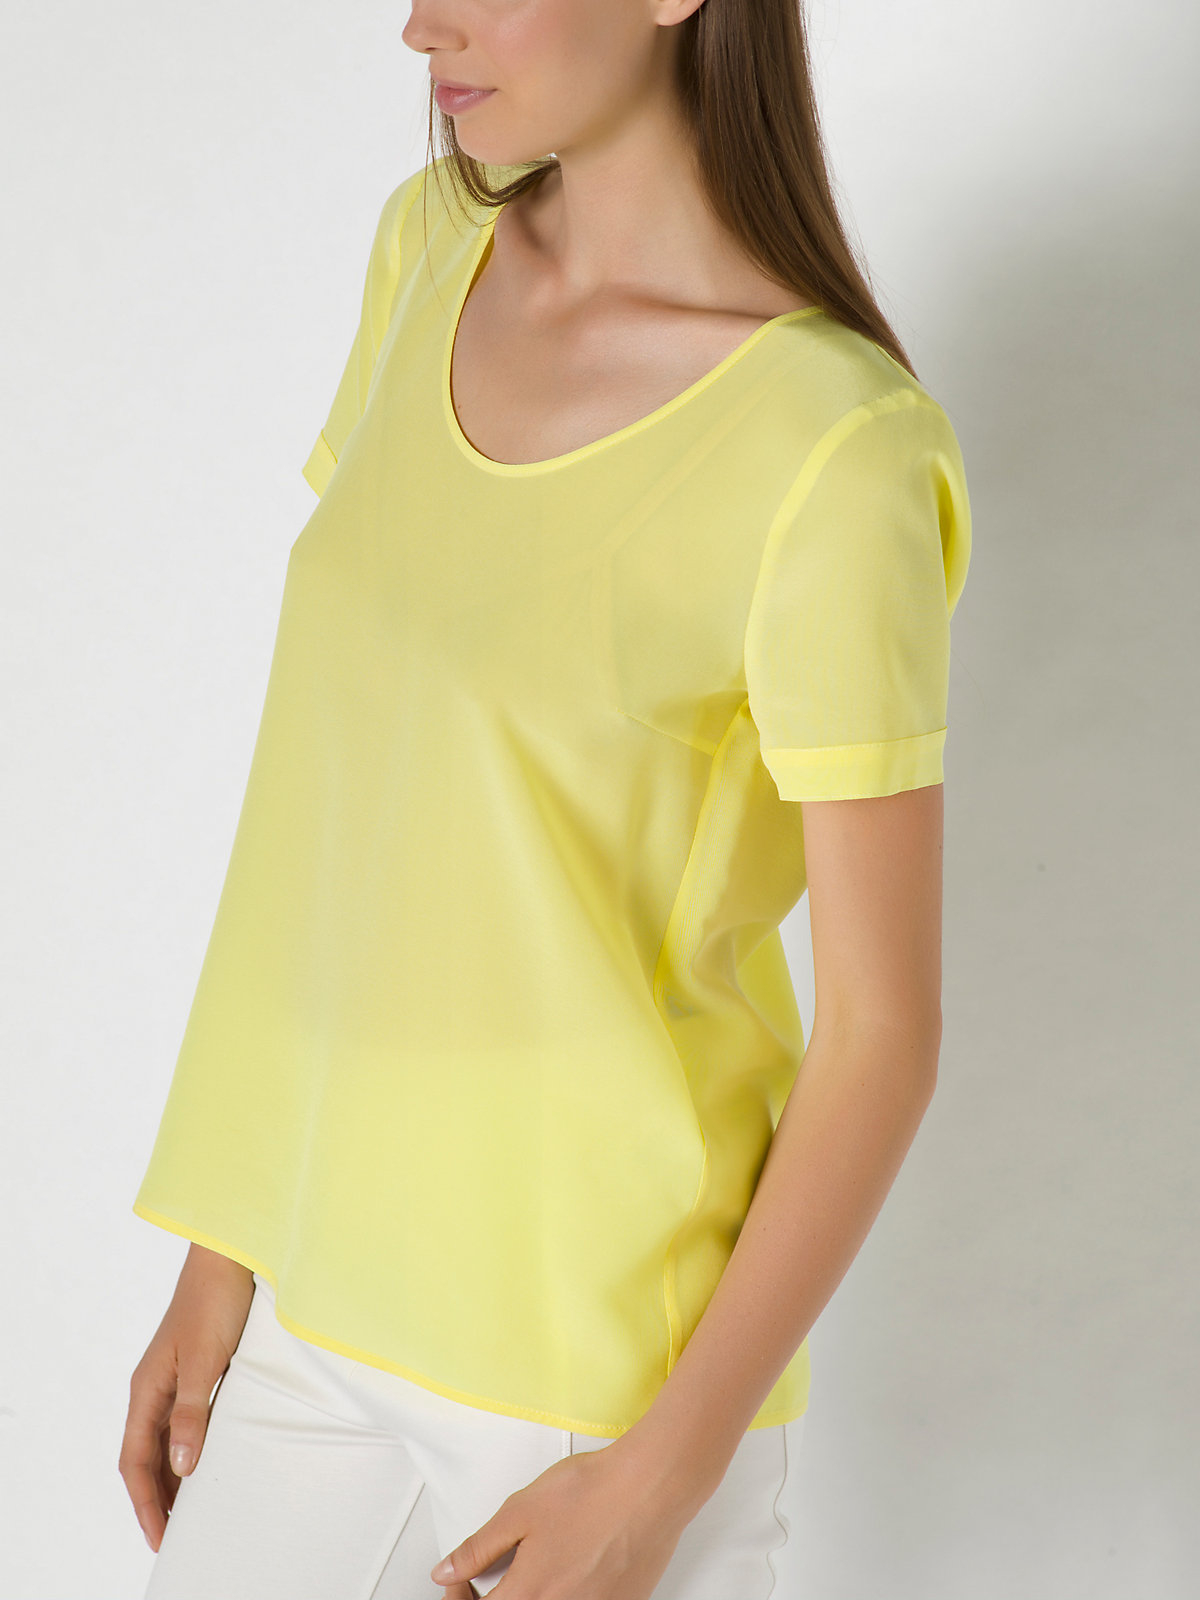 Find Women's Yellow Short-sleeve Tops at puraconga.ml Browse a wide range of styles and order online.